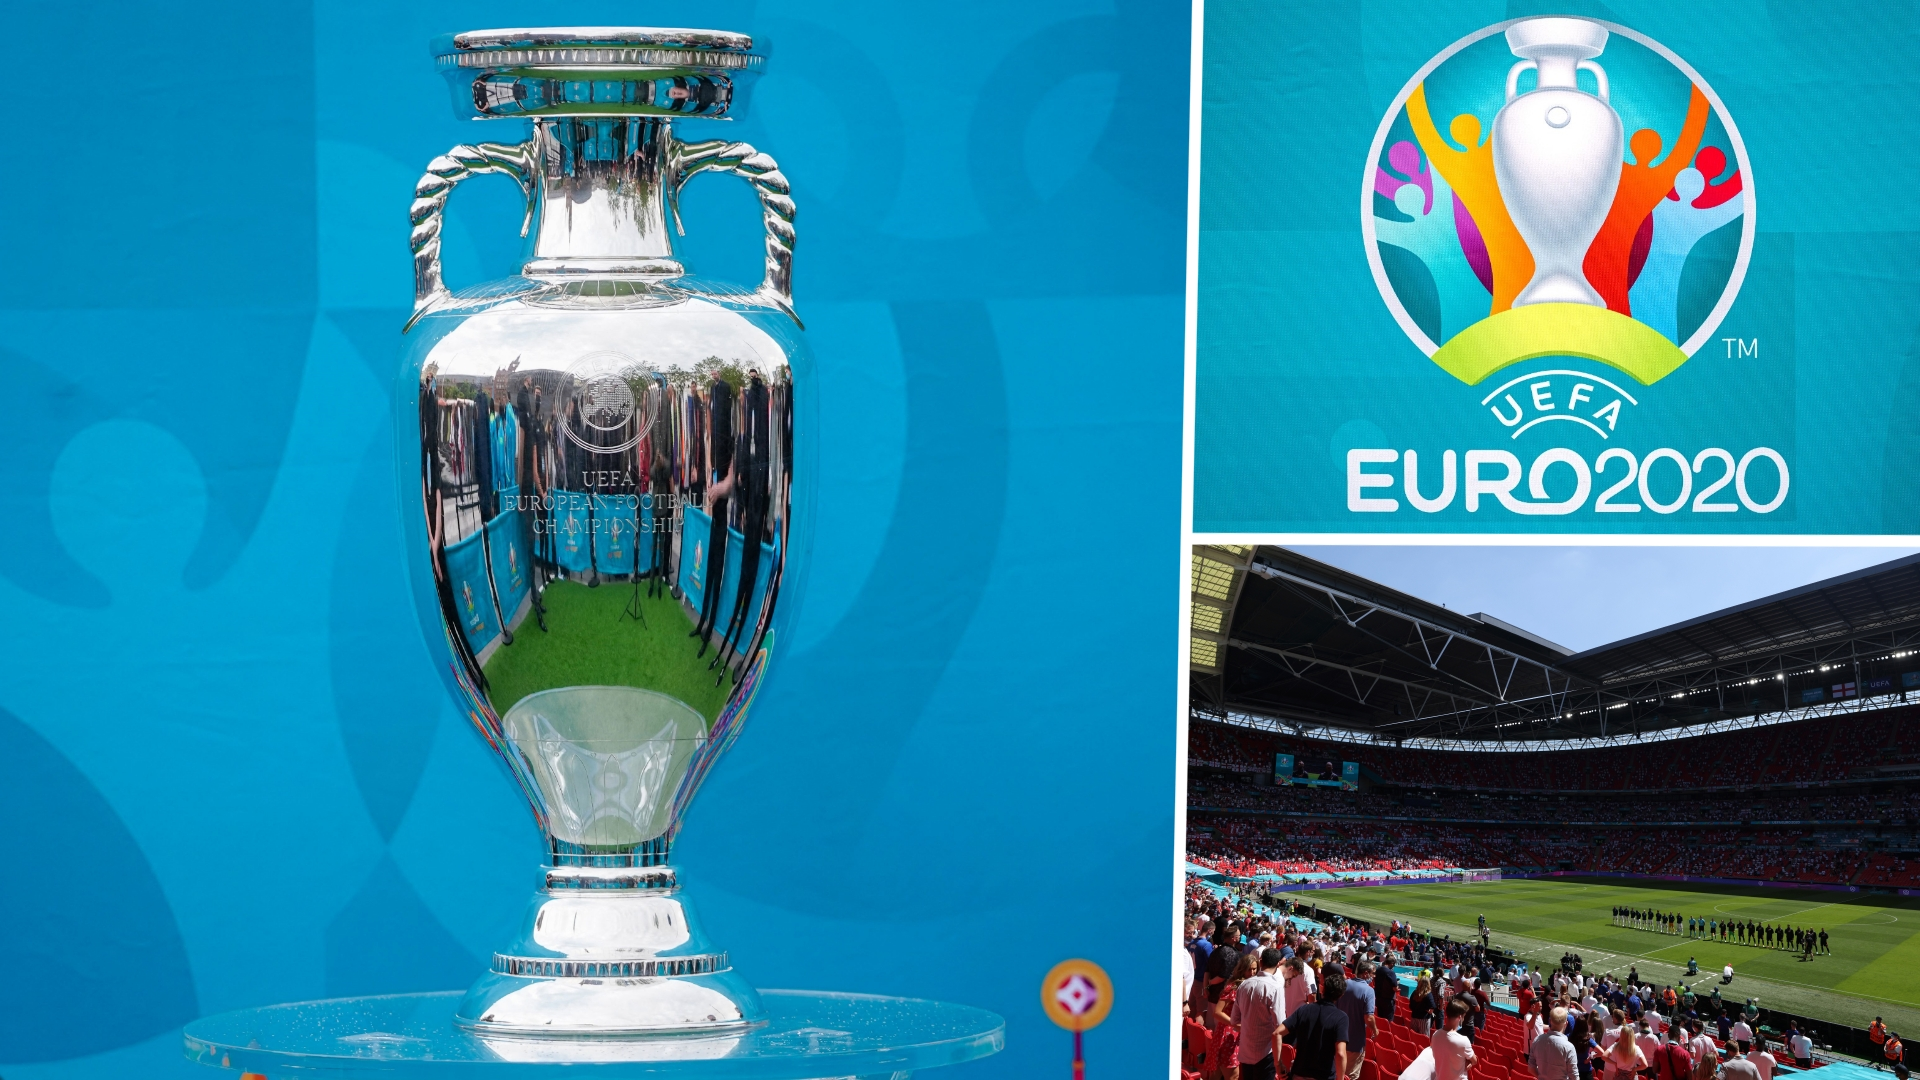 How to watch England vs Denmark in Euro 2020 Semifinals from India?